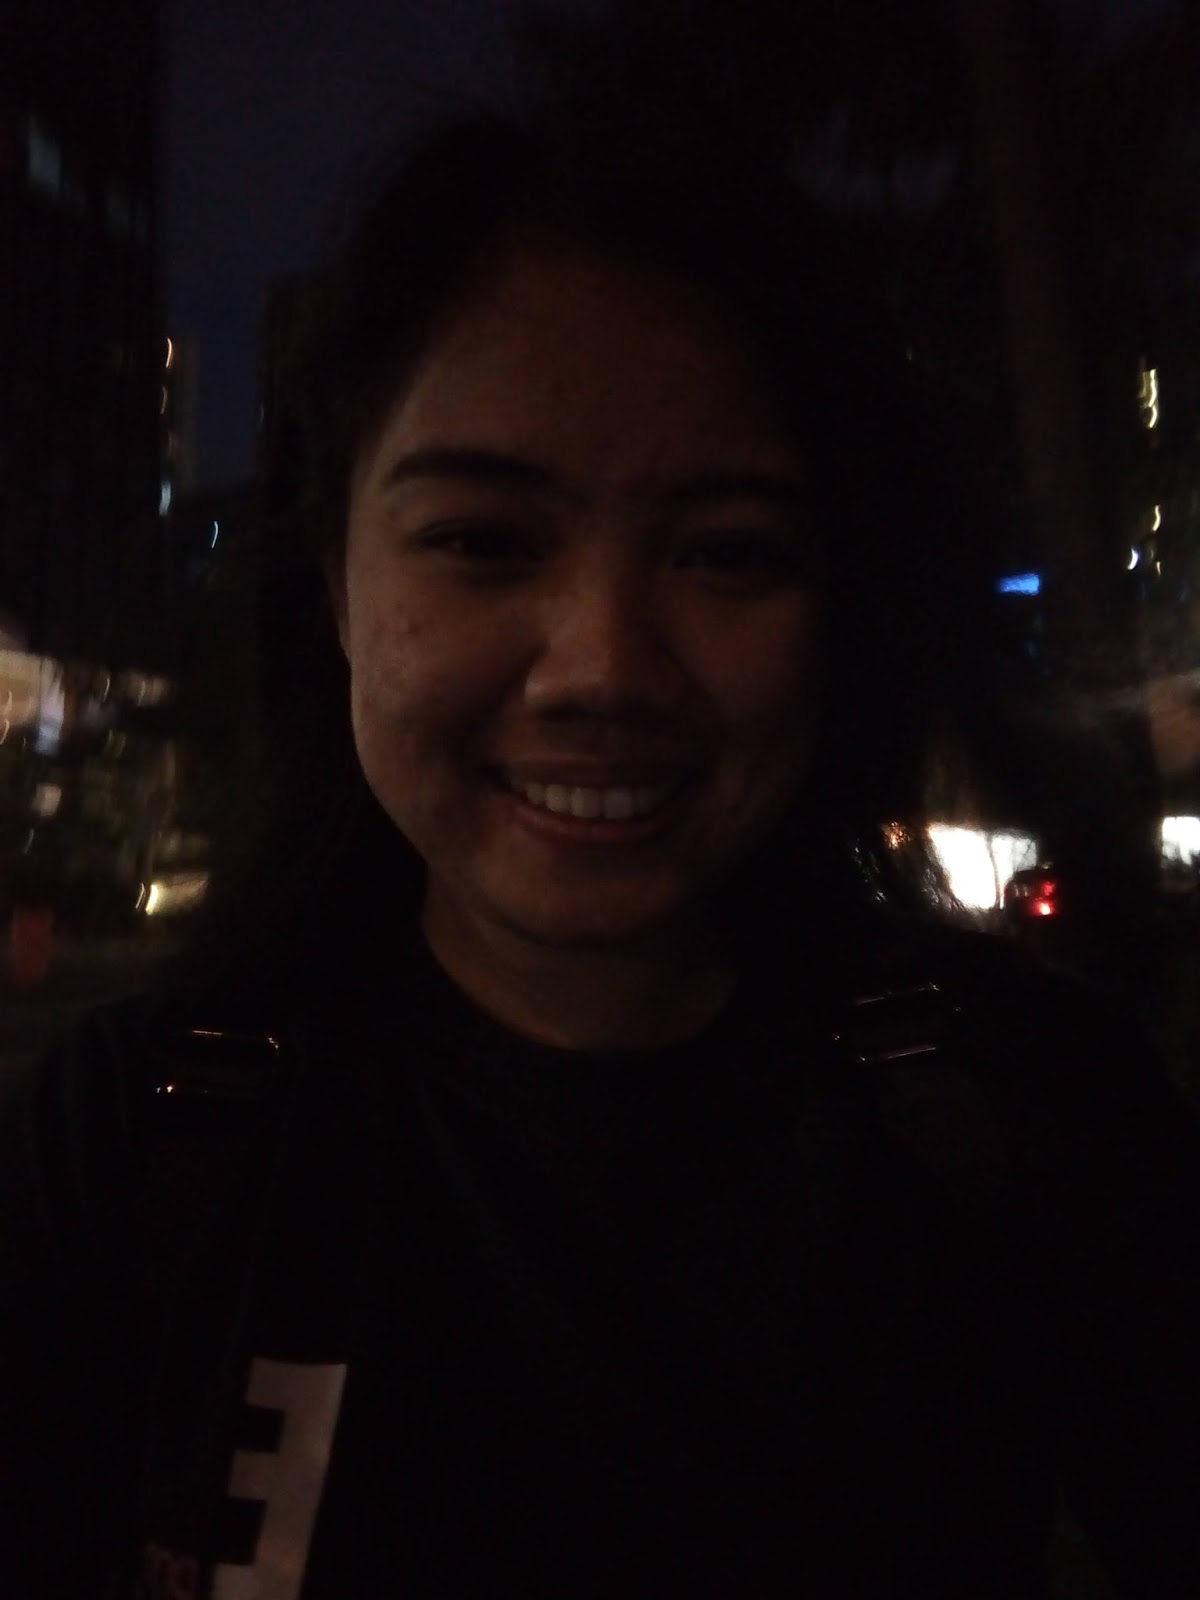 Cloudfone Excite Prime 2 Front Camera Sample - Night (Selfie)